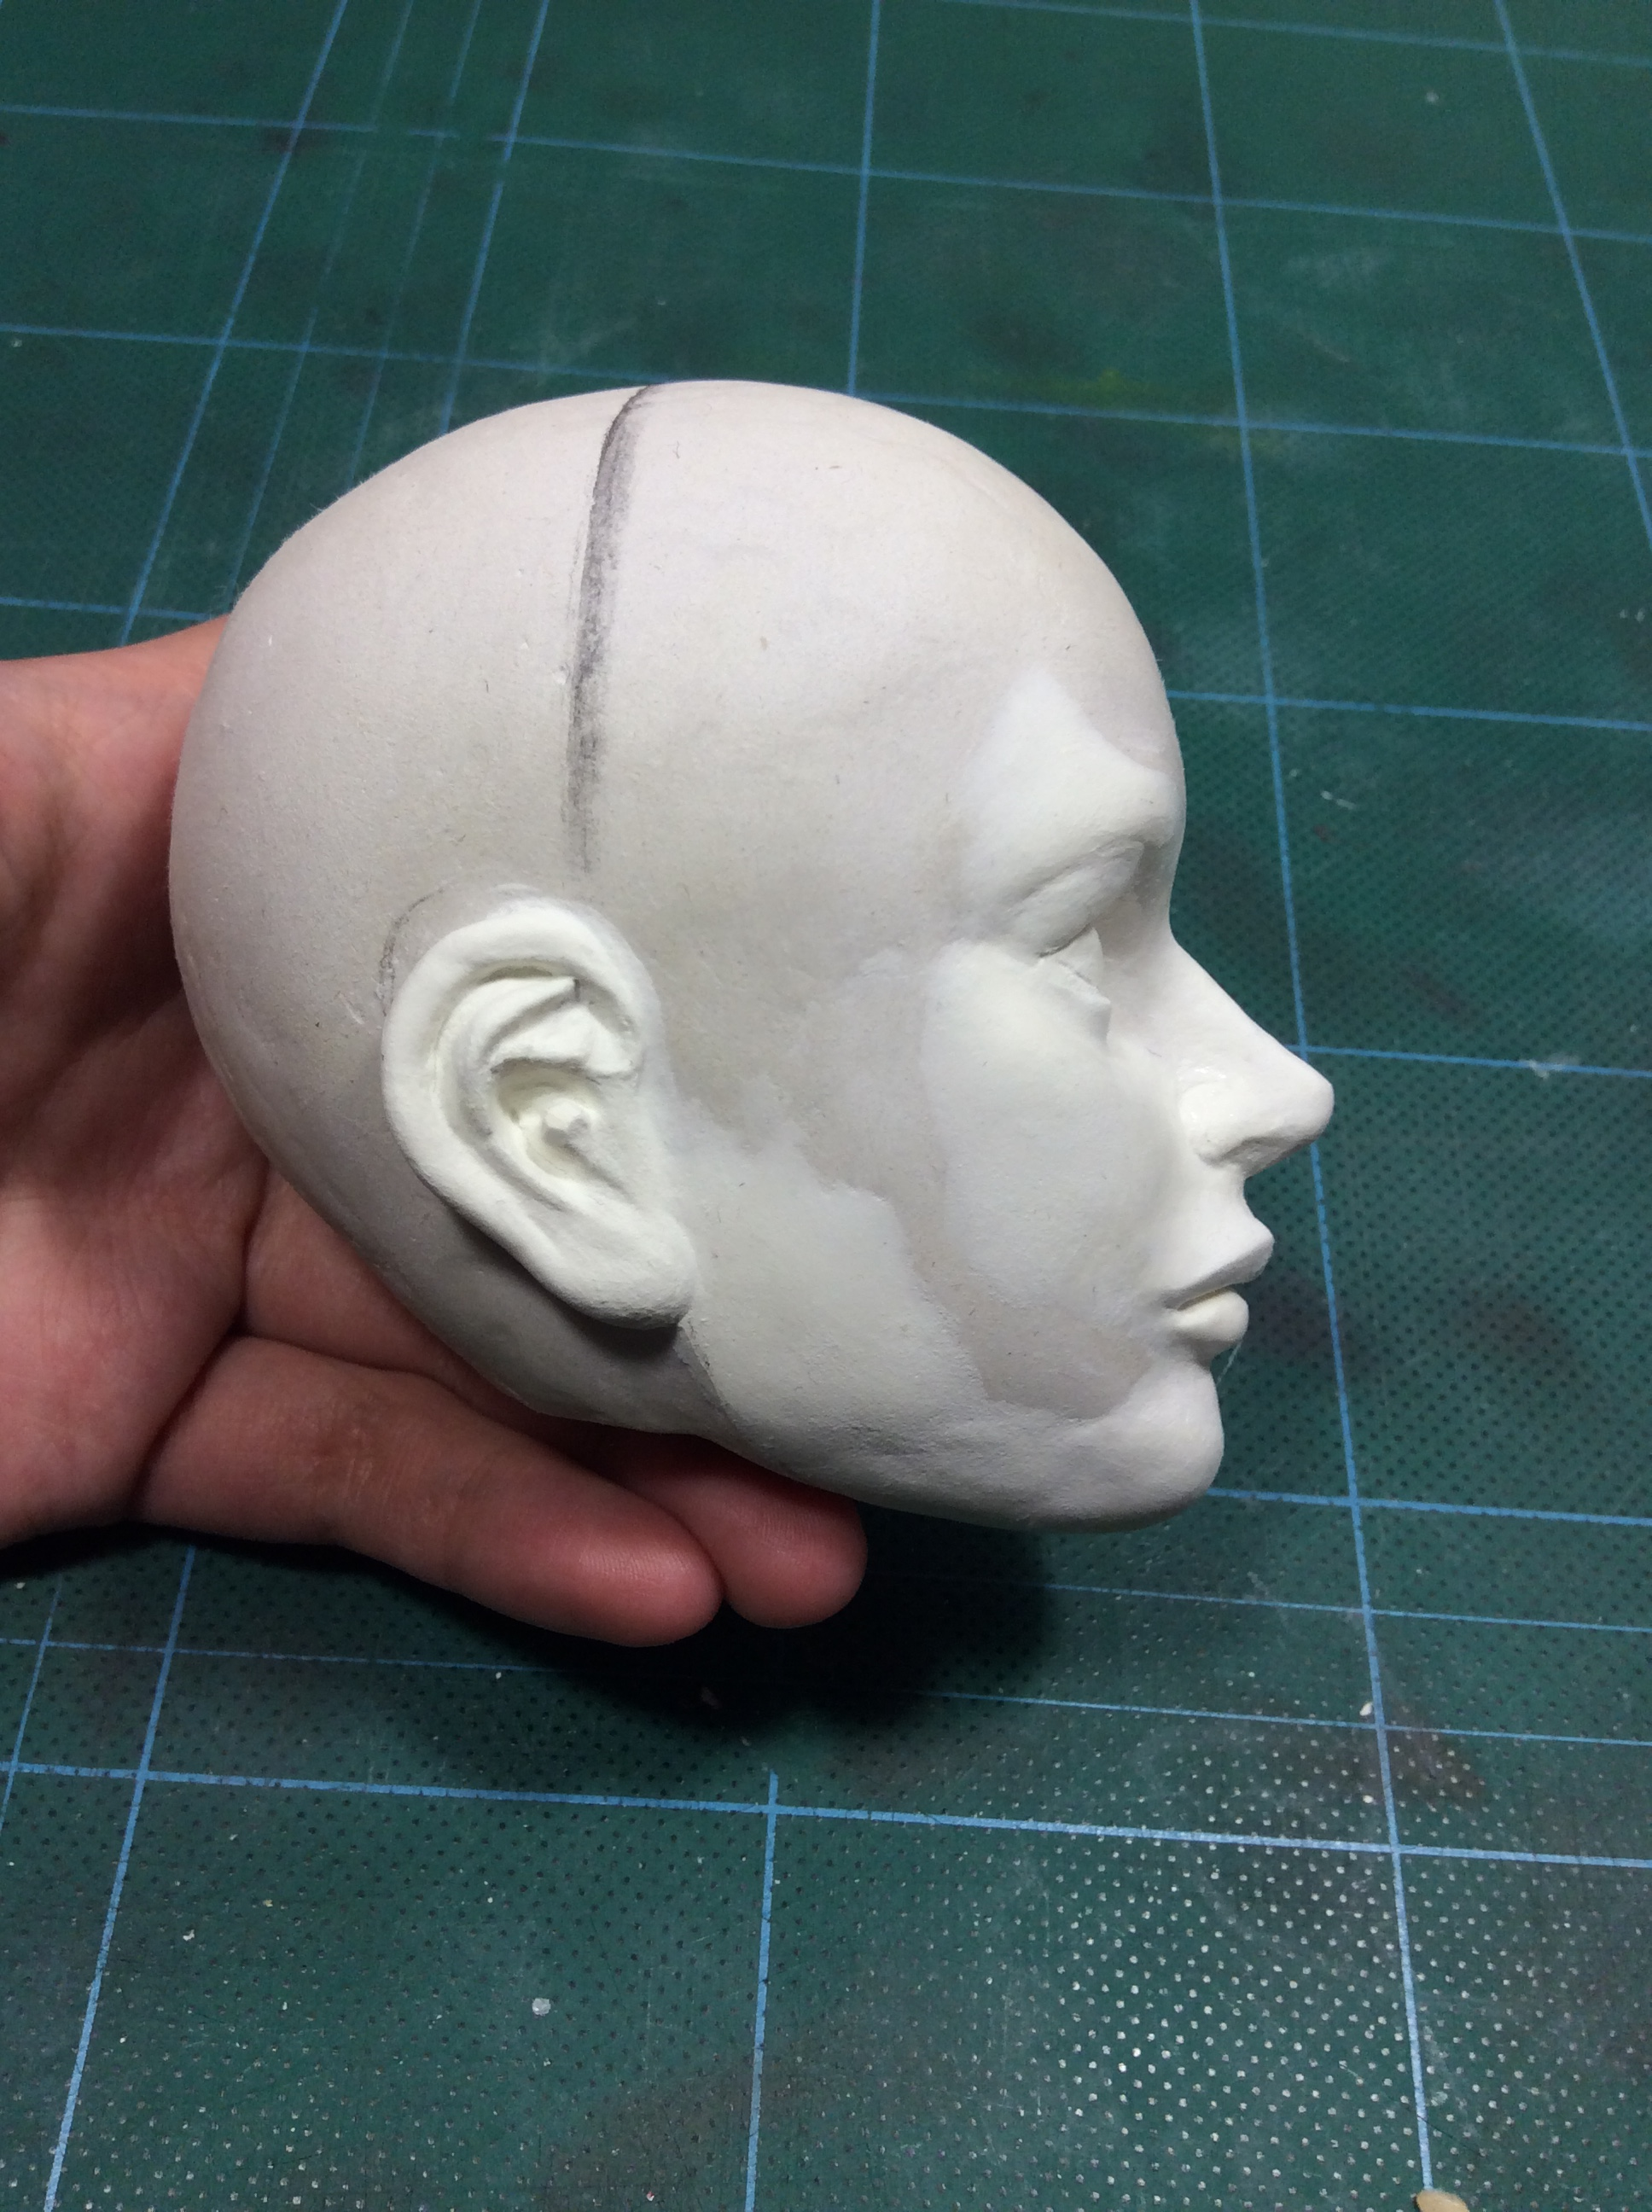 jemse---my-first-doll-head-making-progress-diary-part-3_31571089254_o